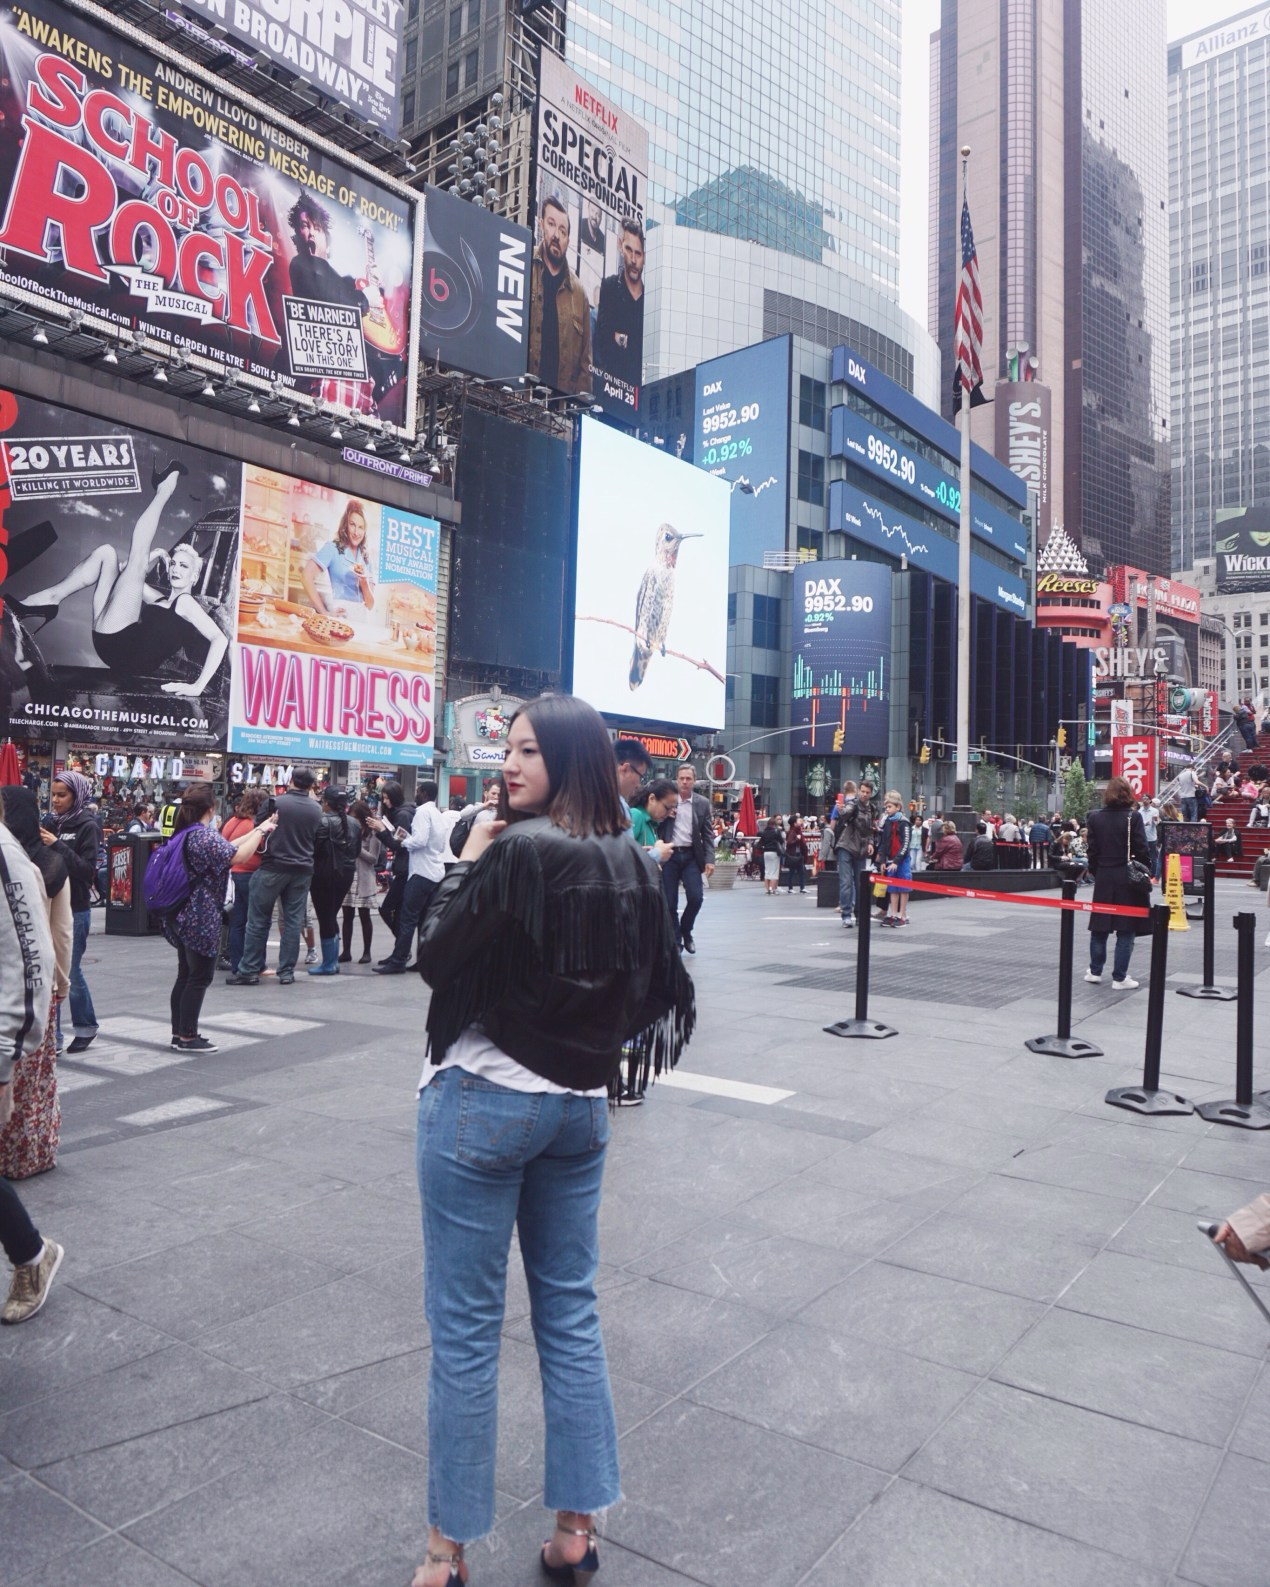 Leopard NYC City Guide: 5 Things You Must do in New York City | The Lady-like Leopard blog by fashion writer Melina Morry